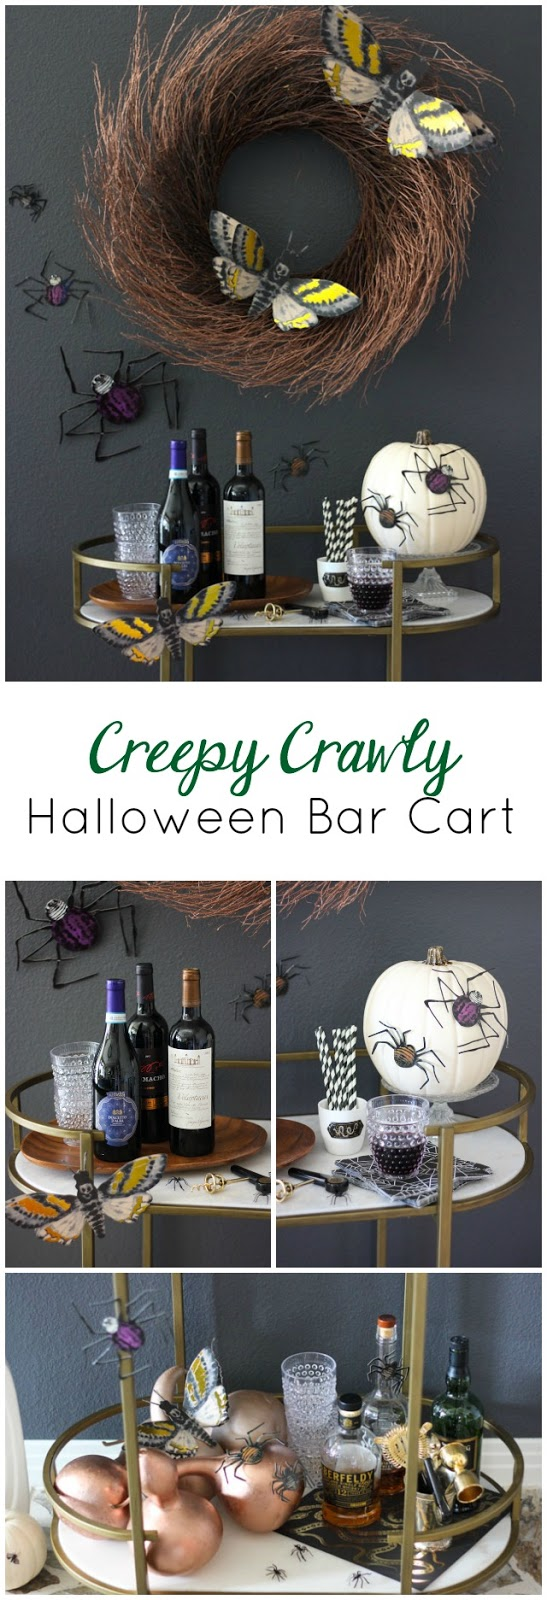 Create this bug-filled bar cart for your Halloween decor!